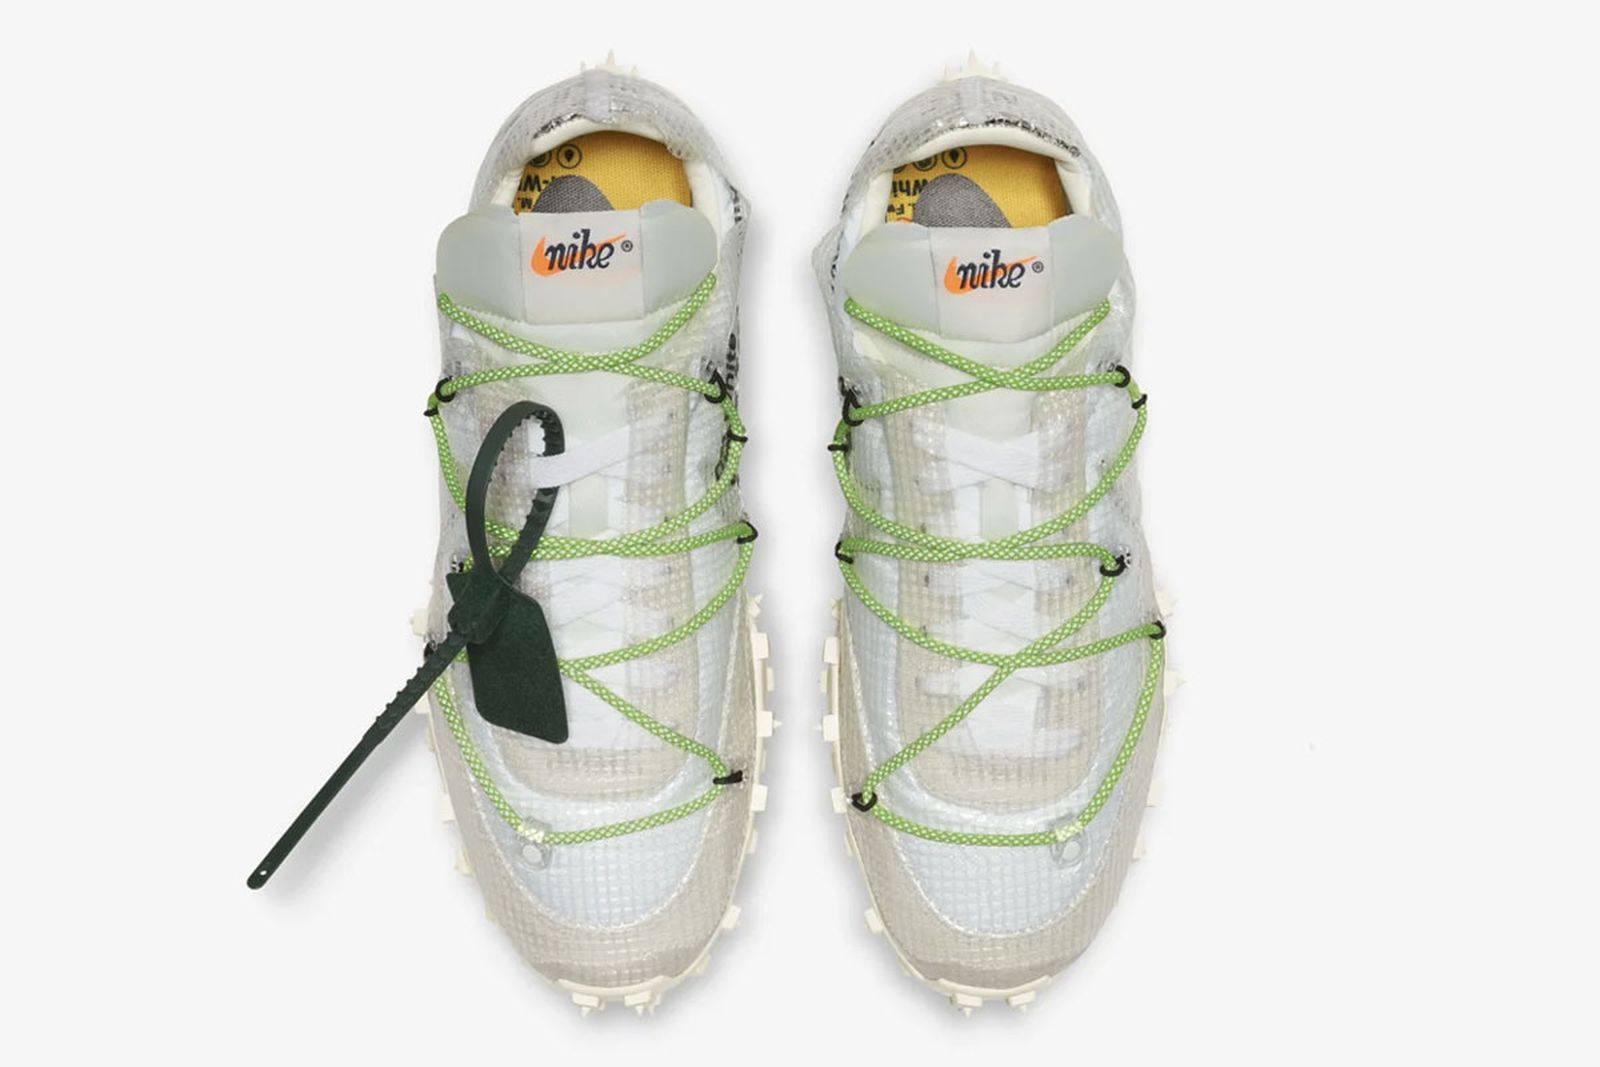 off-white-nike-waffle-racer-sp-release-date-price-12